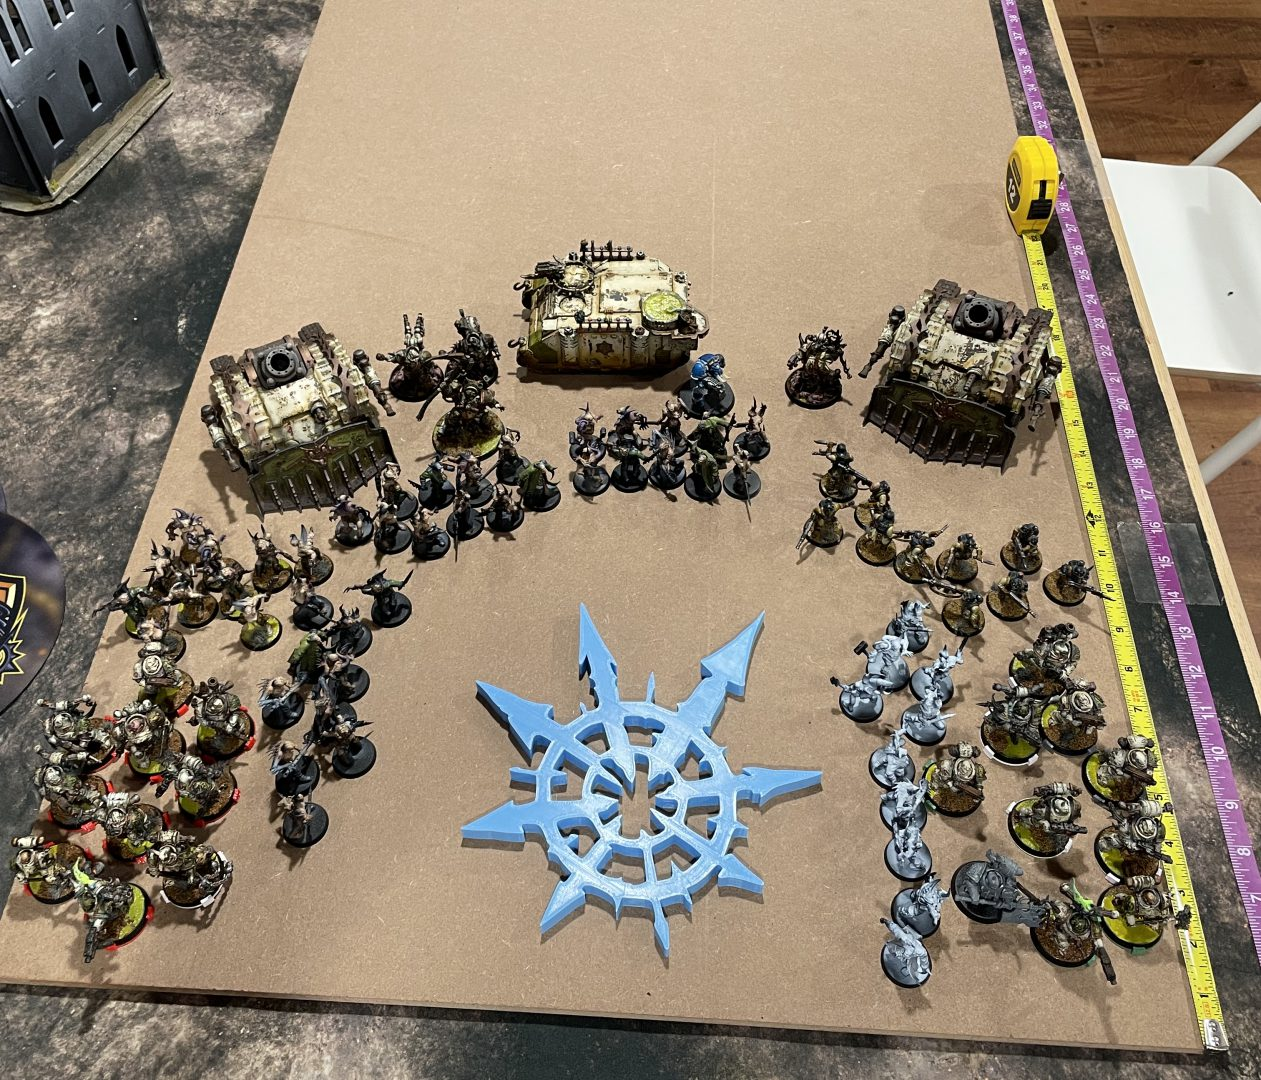 The Fabricator General: Building a Nurgle-themed display board, Version 2